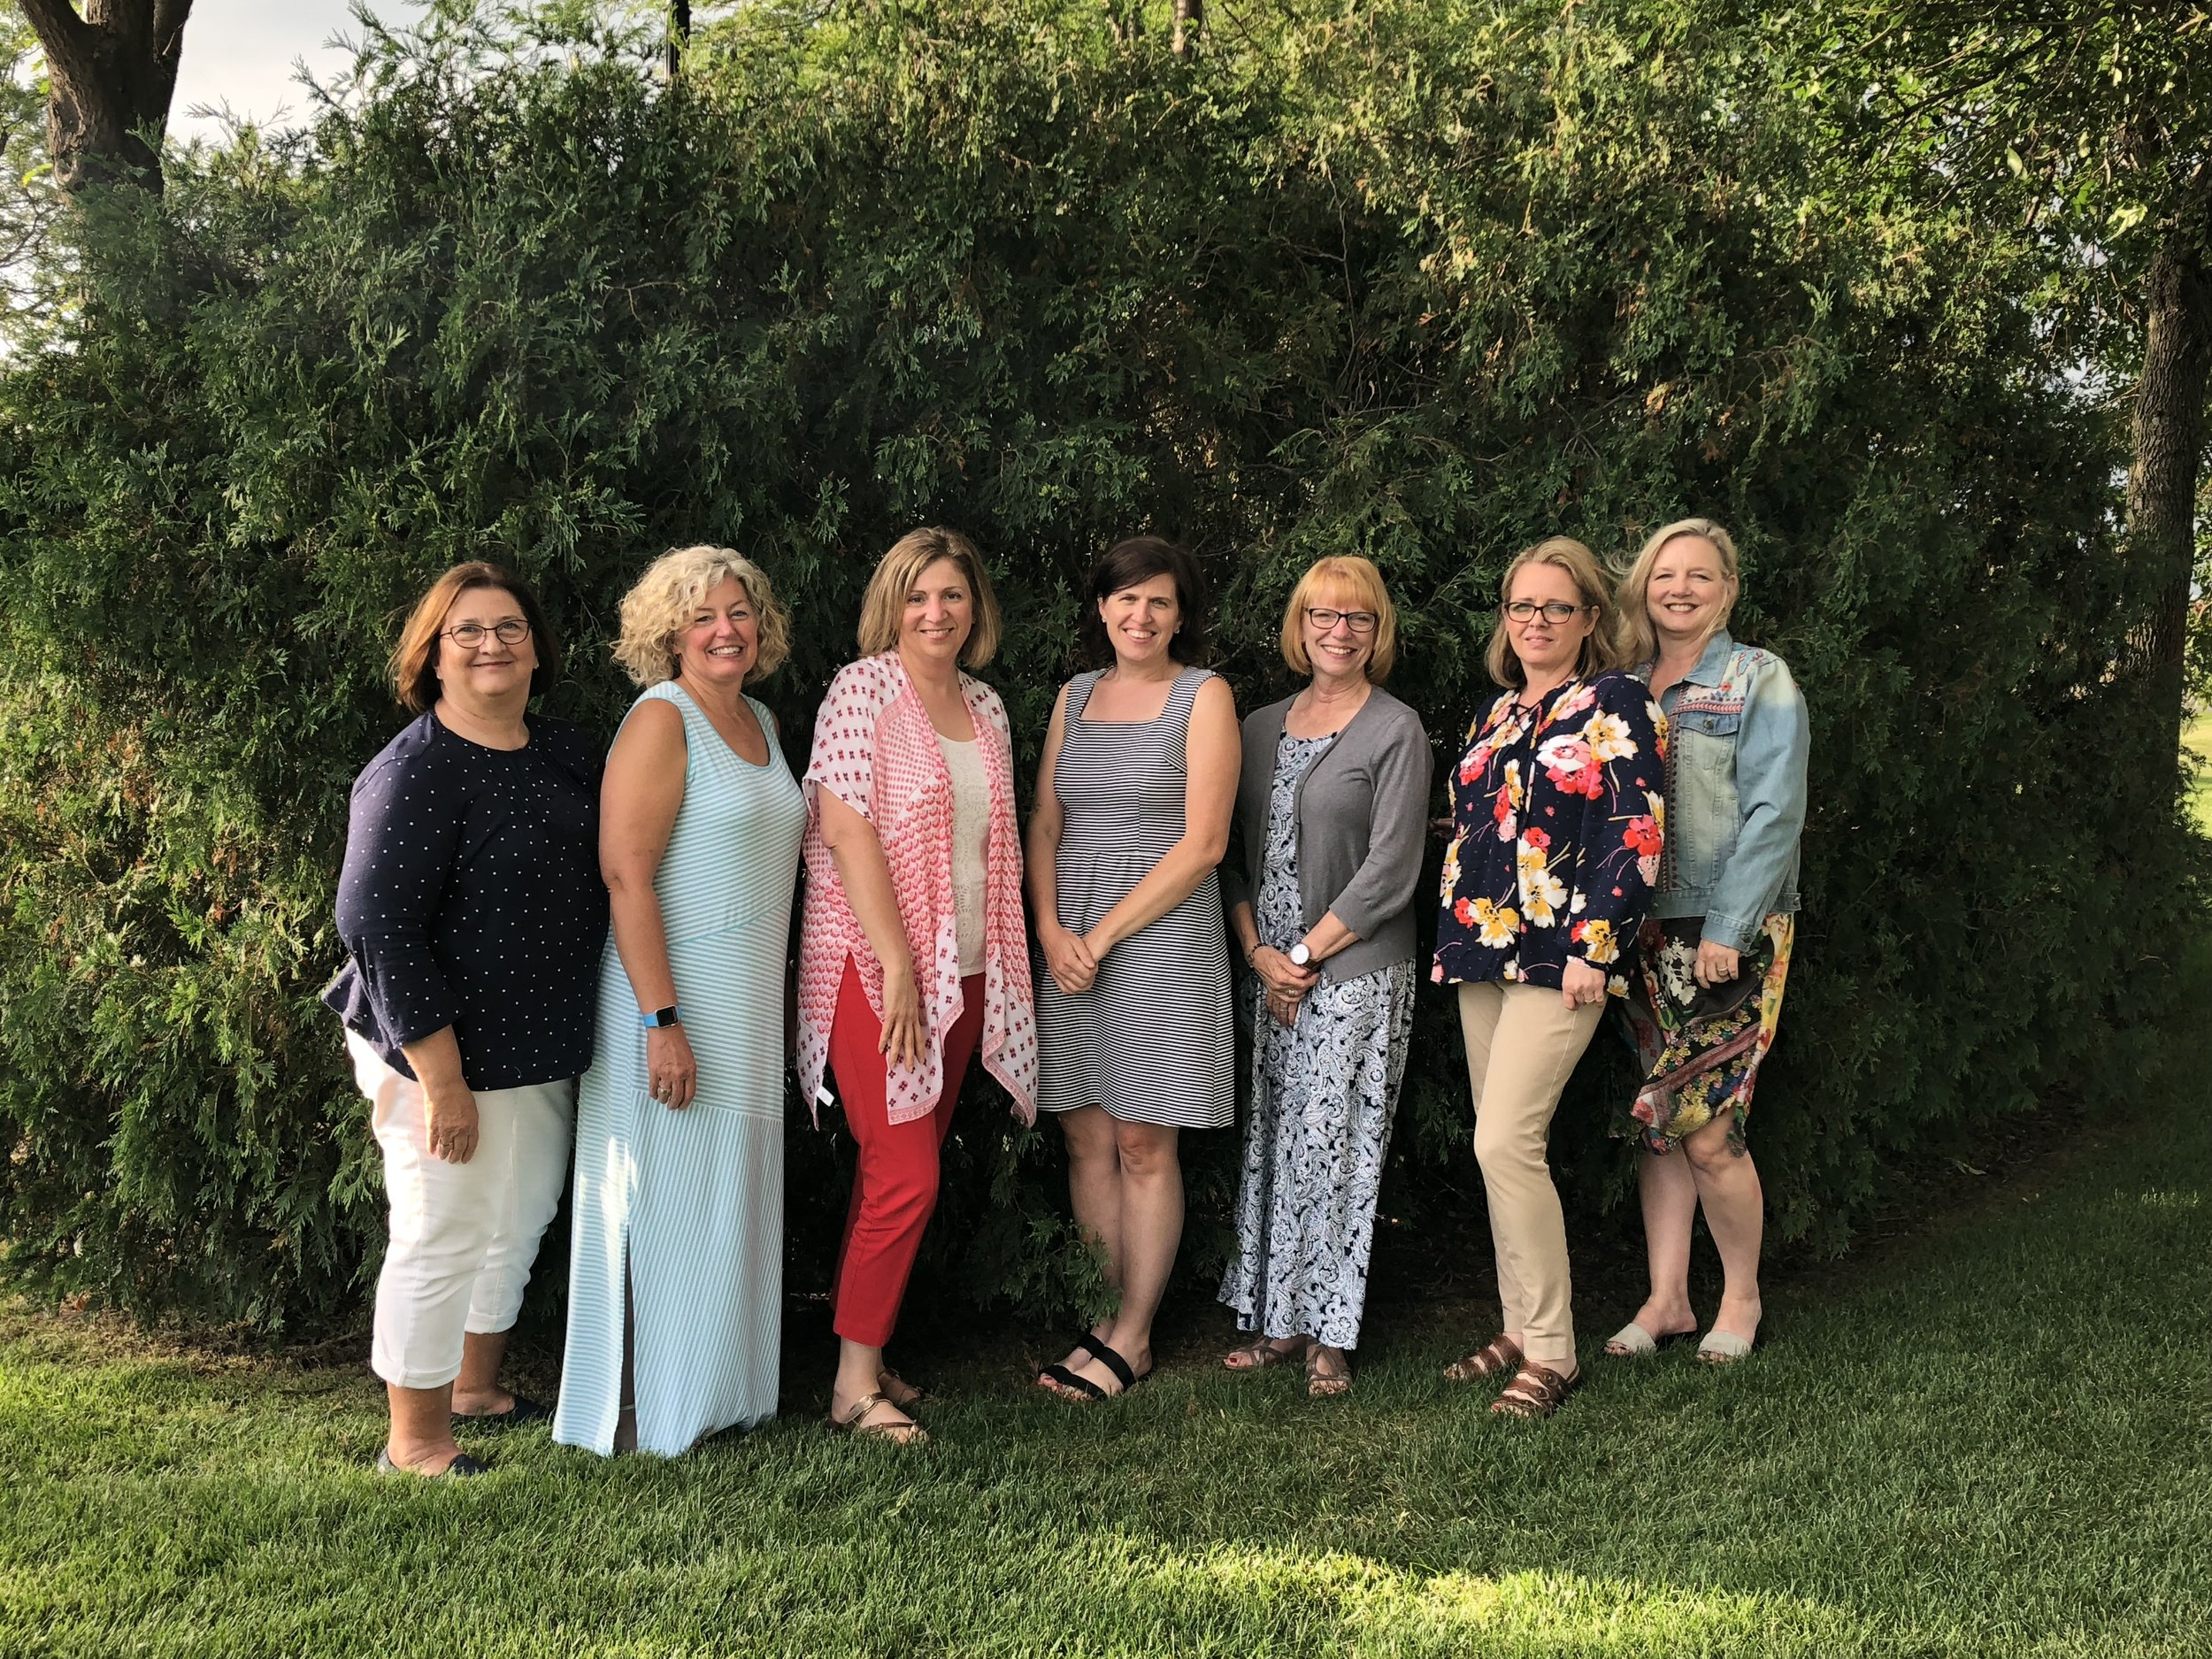 Mary, Stephanie, Doris, Amanda Jean, Cindy, Michelle, and me...missing Shelly and Terri